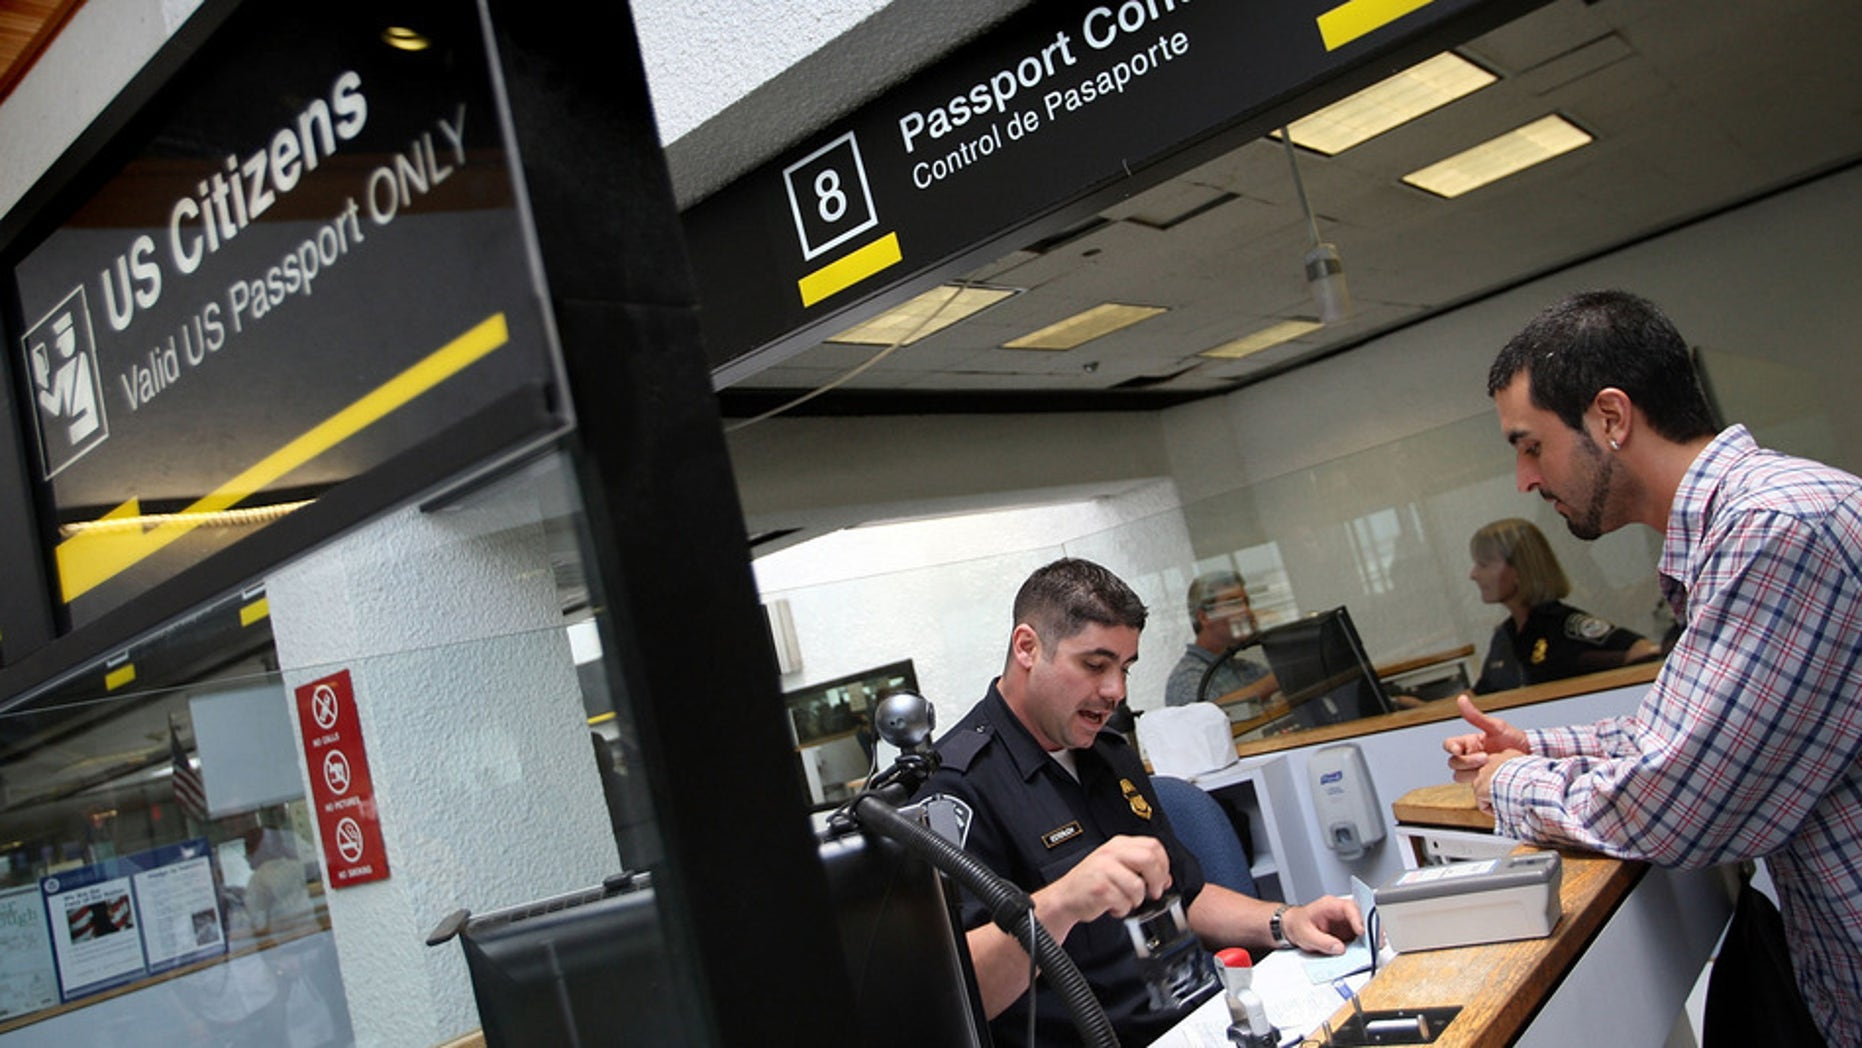 Visitors to the U.S. could face enhanced security restrictions.